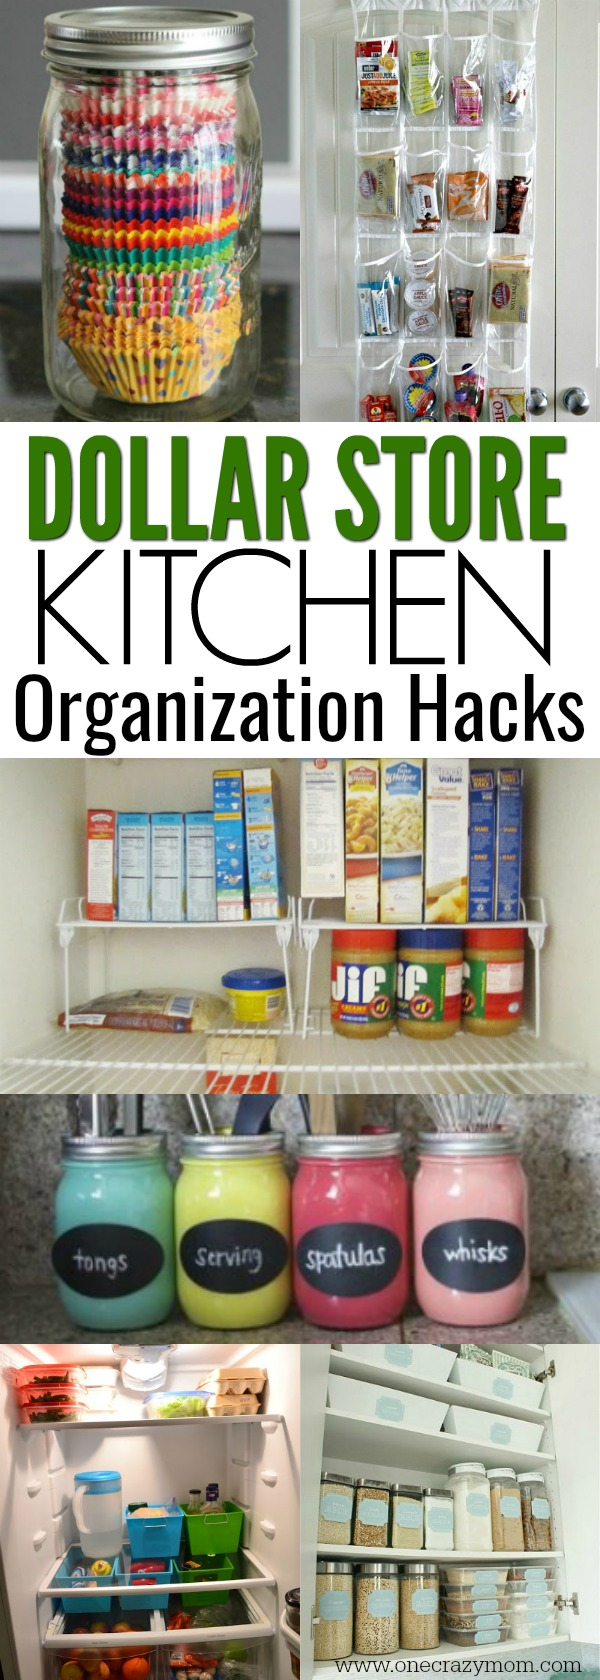 Dollar Store Kitchen Organization Ideas 20 Clever Ideas